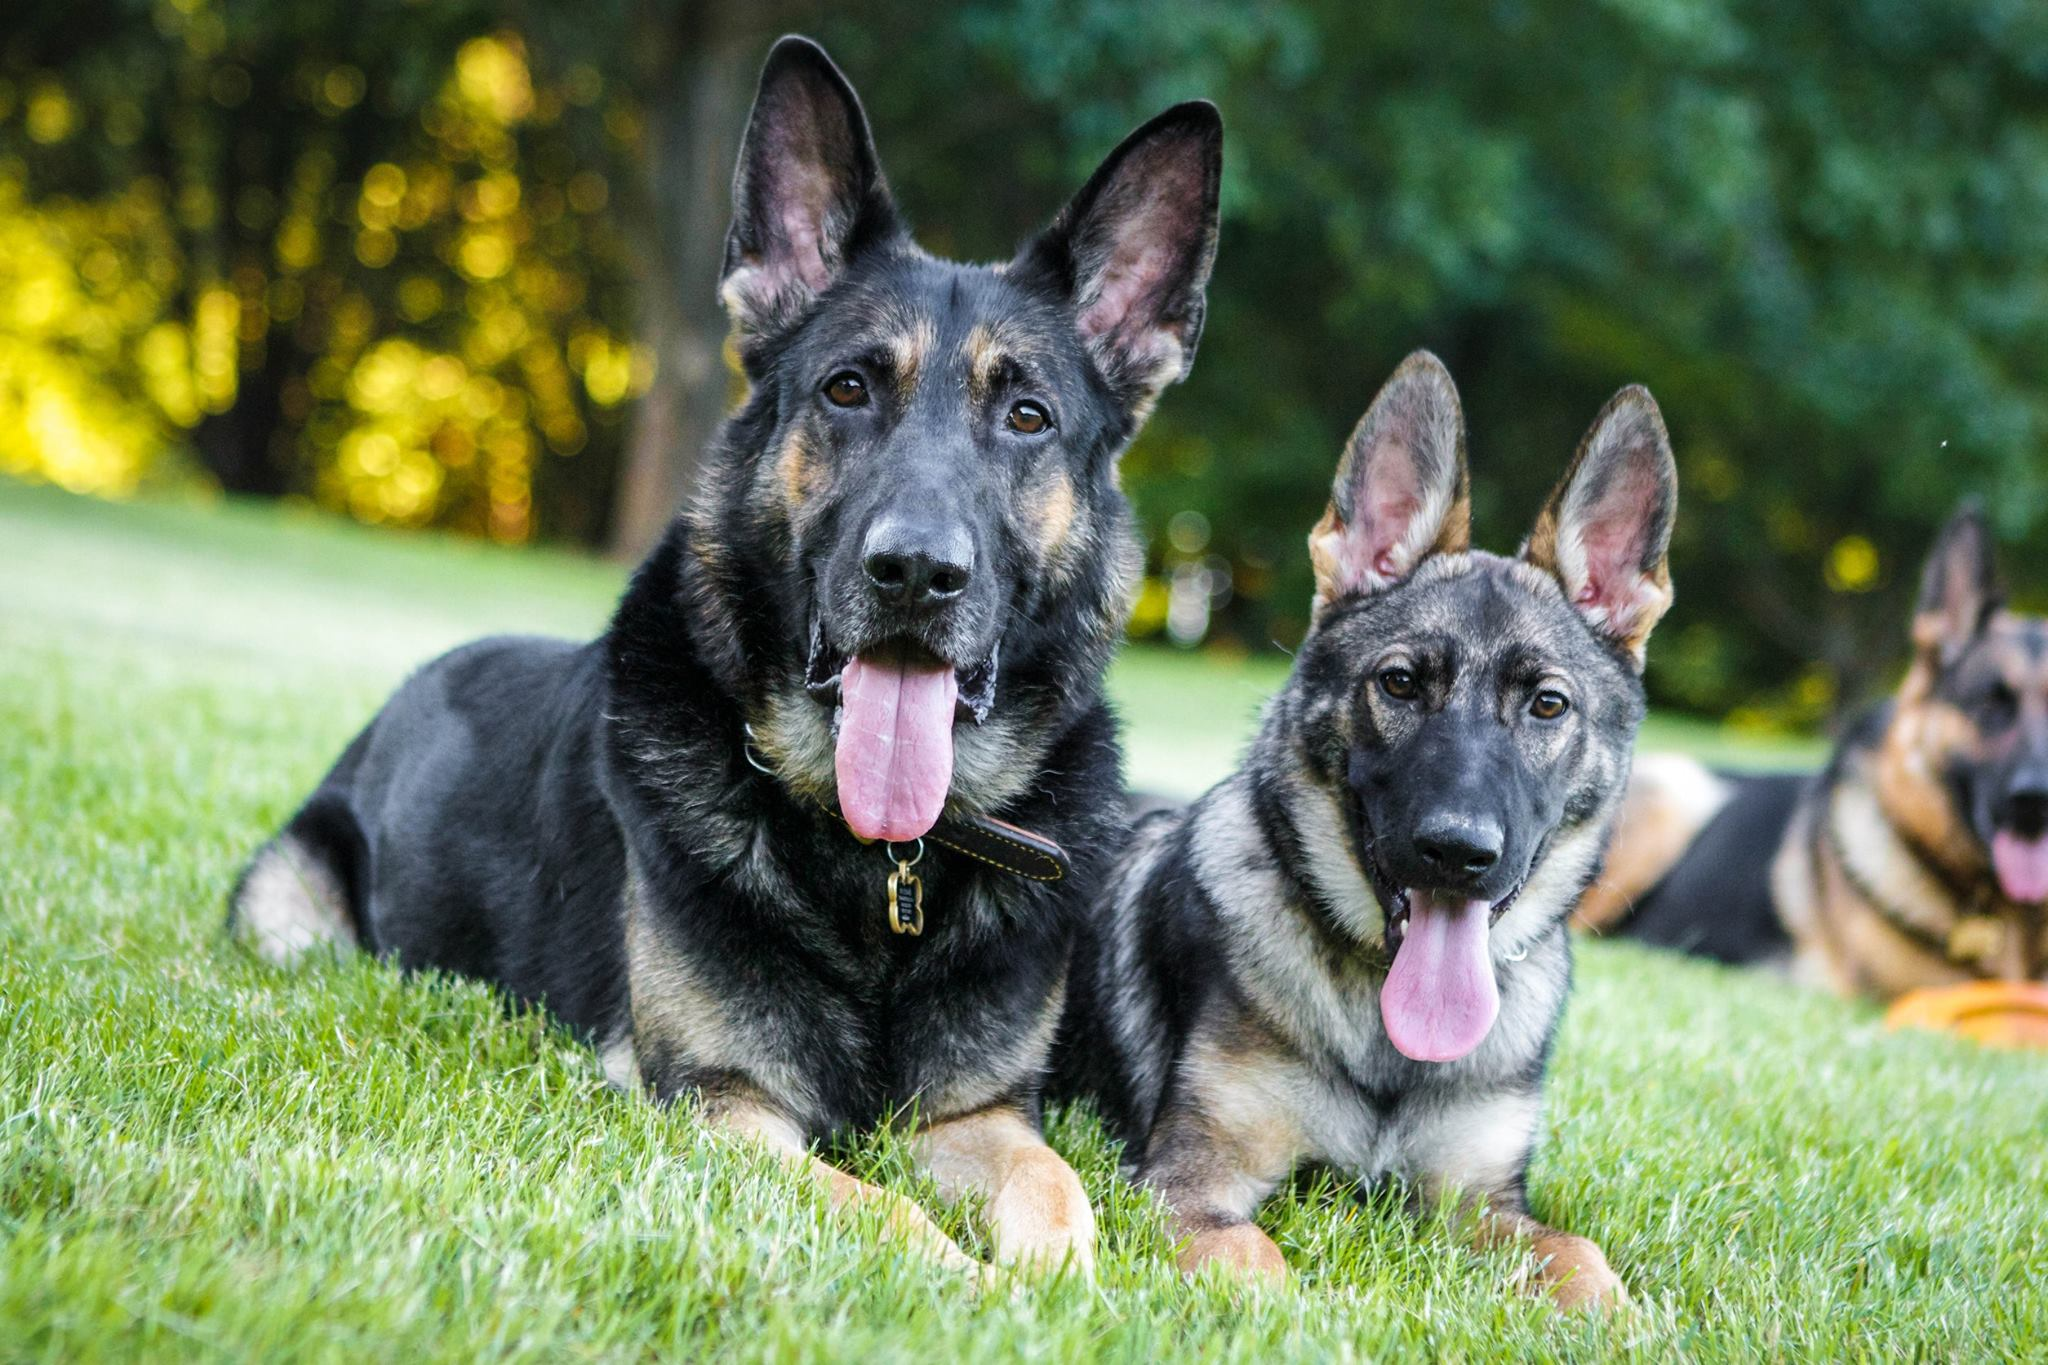 Karma at about 4 months old.